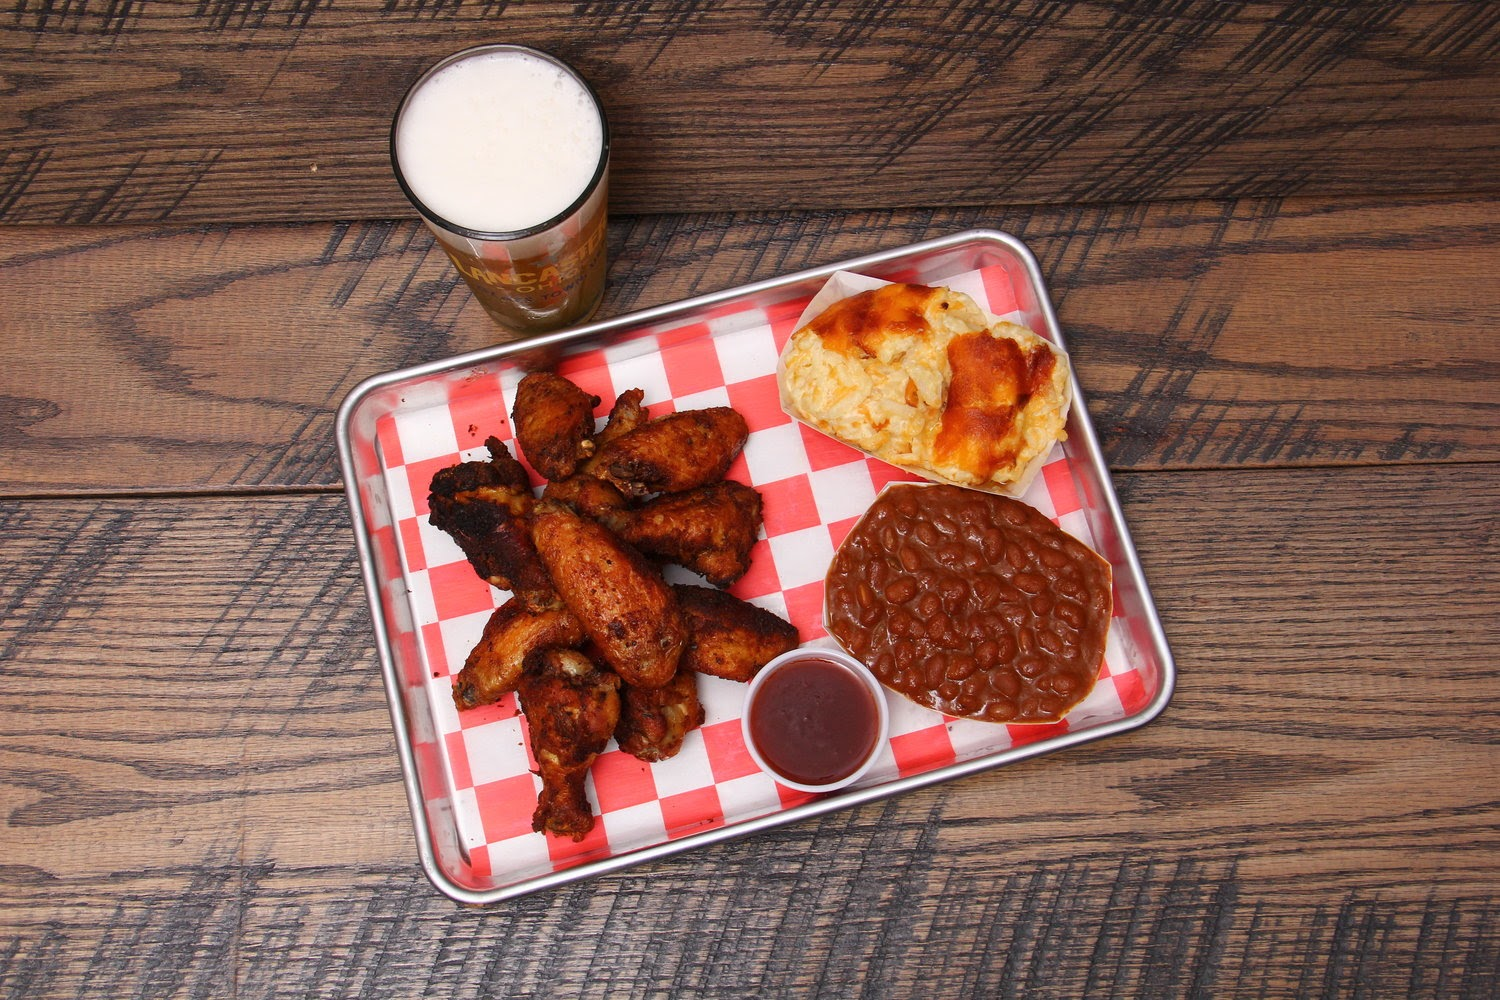 An appetizing plate you can grab at Bob's Backyard Barbeque.